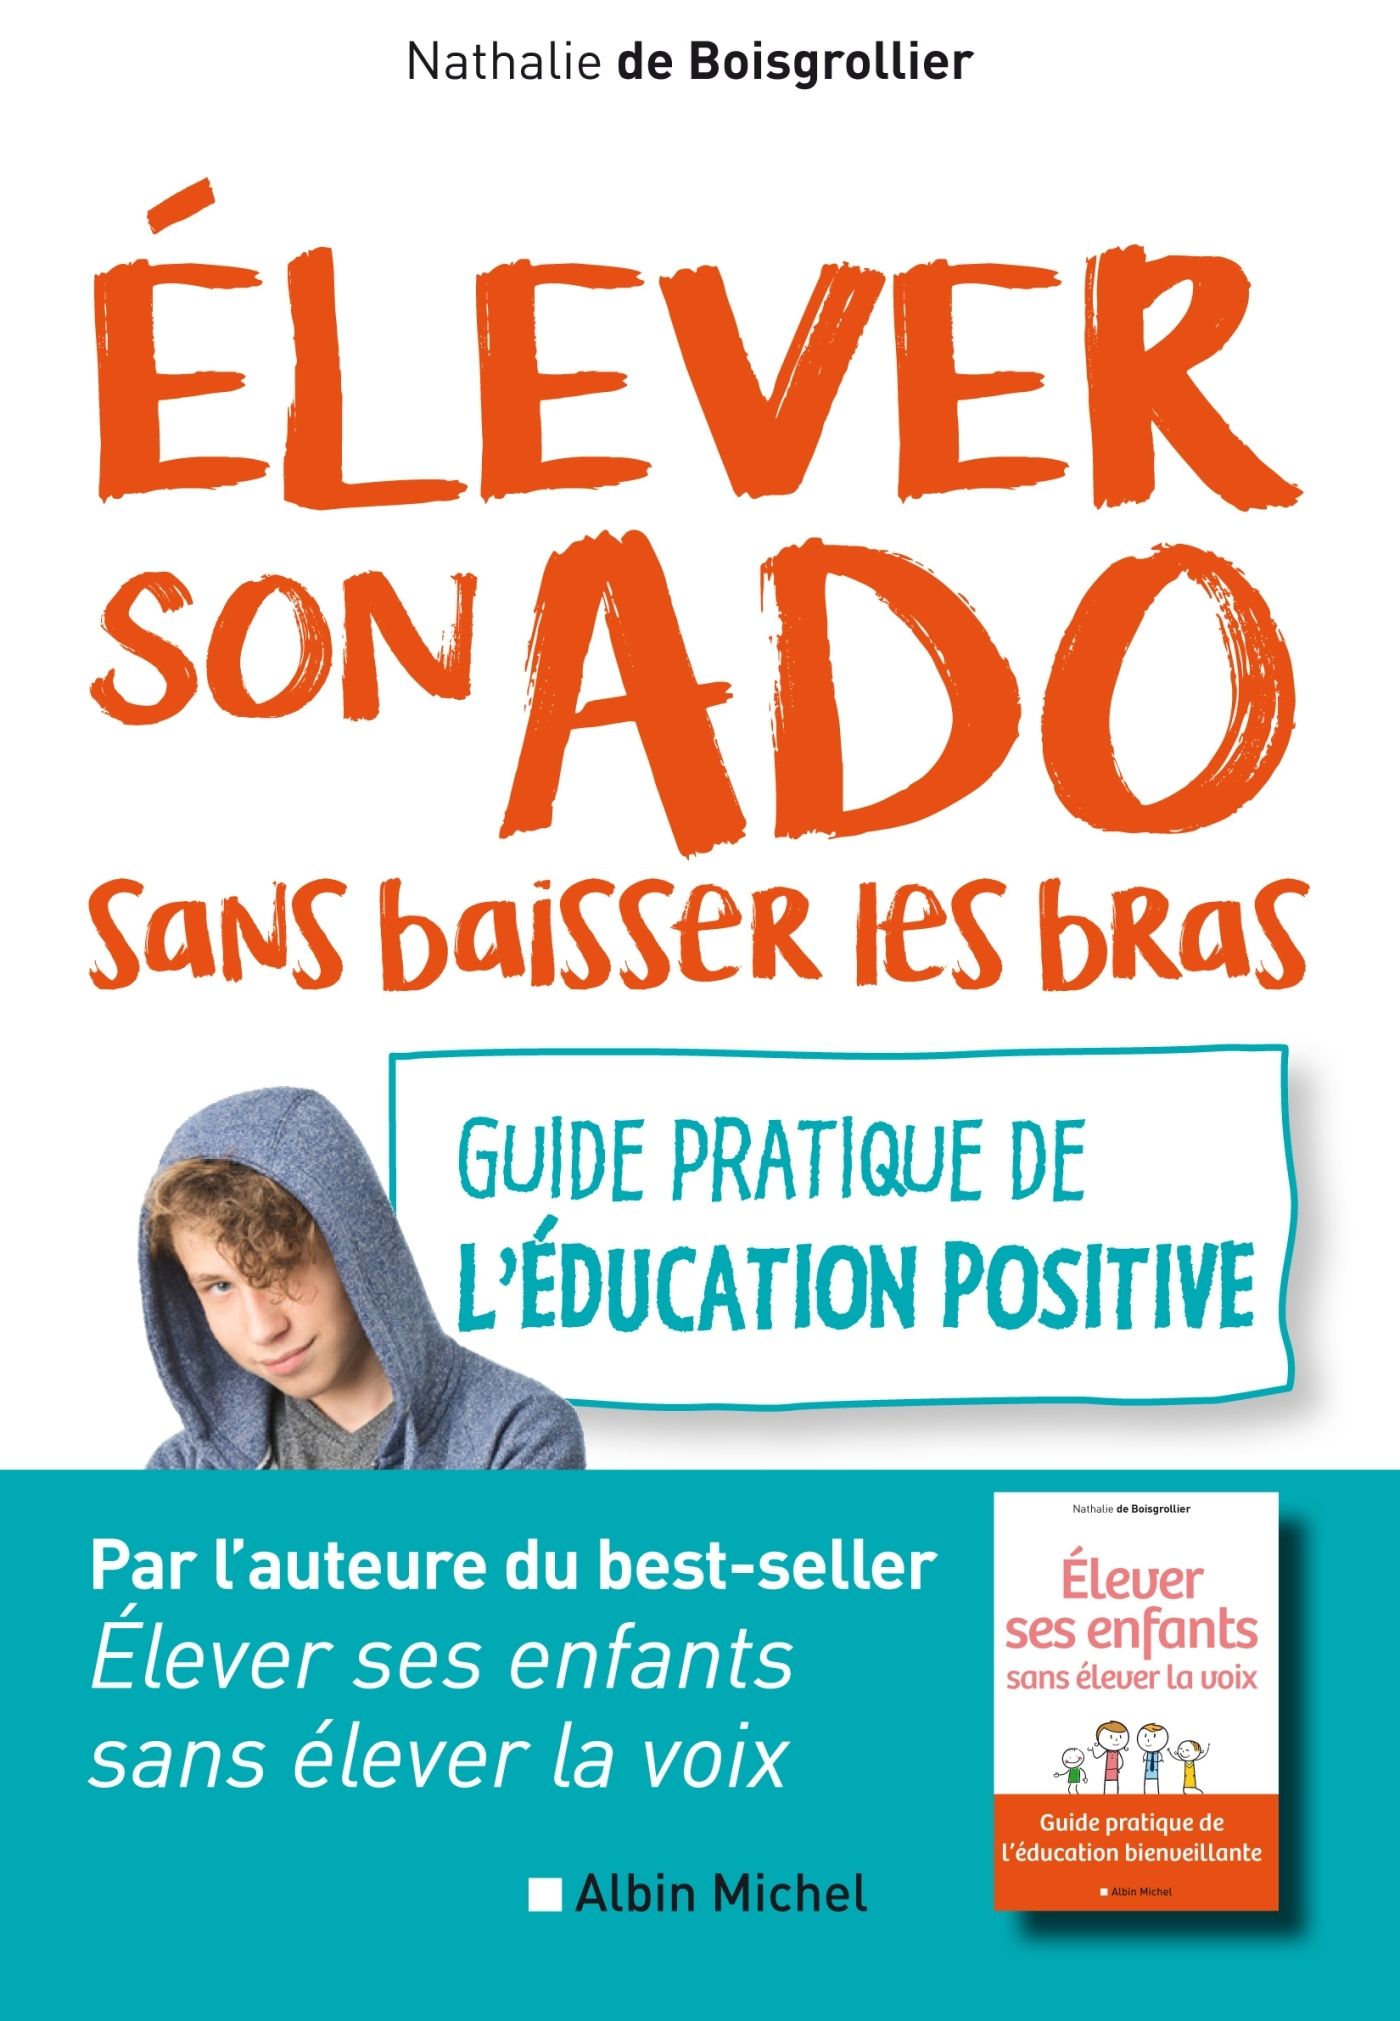 ELEVER SON ADO SANS BAISSER LES BRAS - GUIDE PRATIQUE DE L'EDUCATION POSITIVE